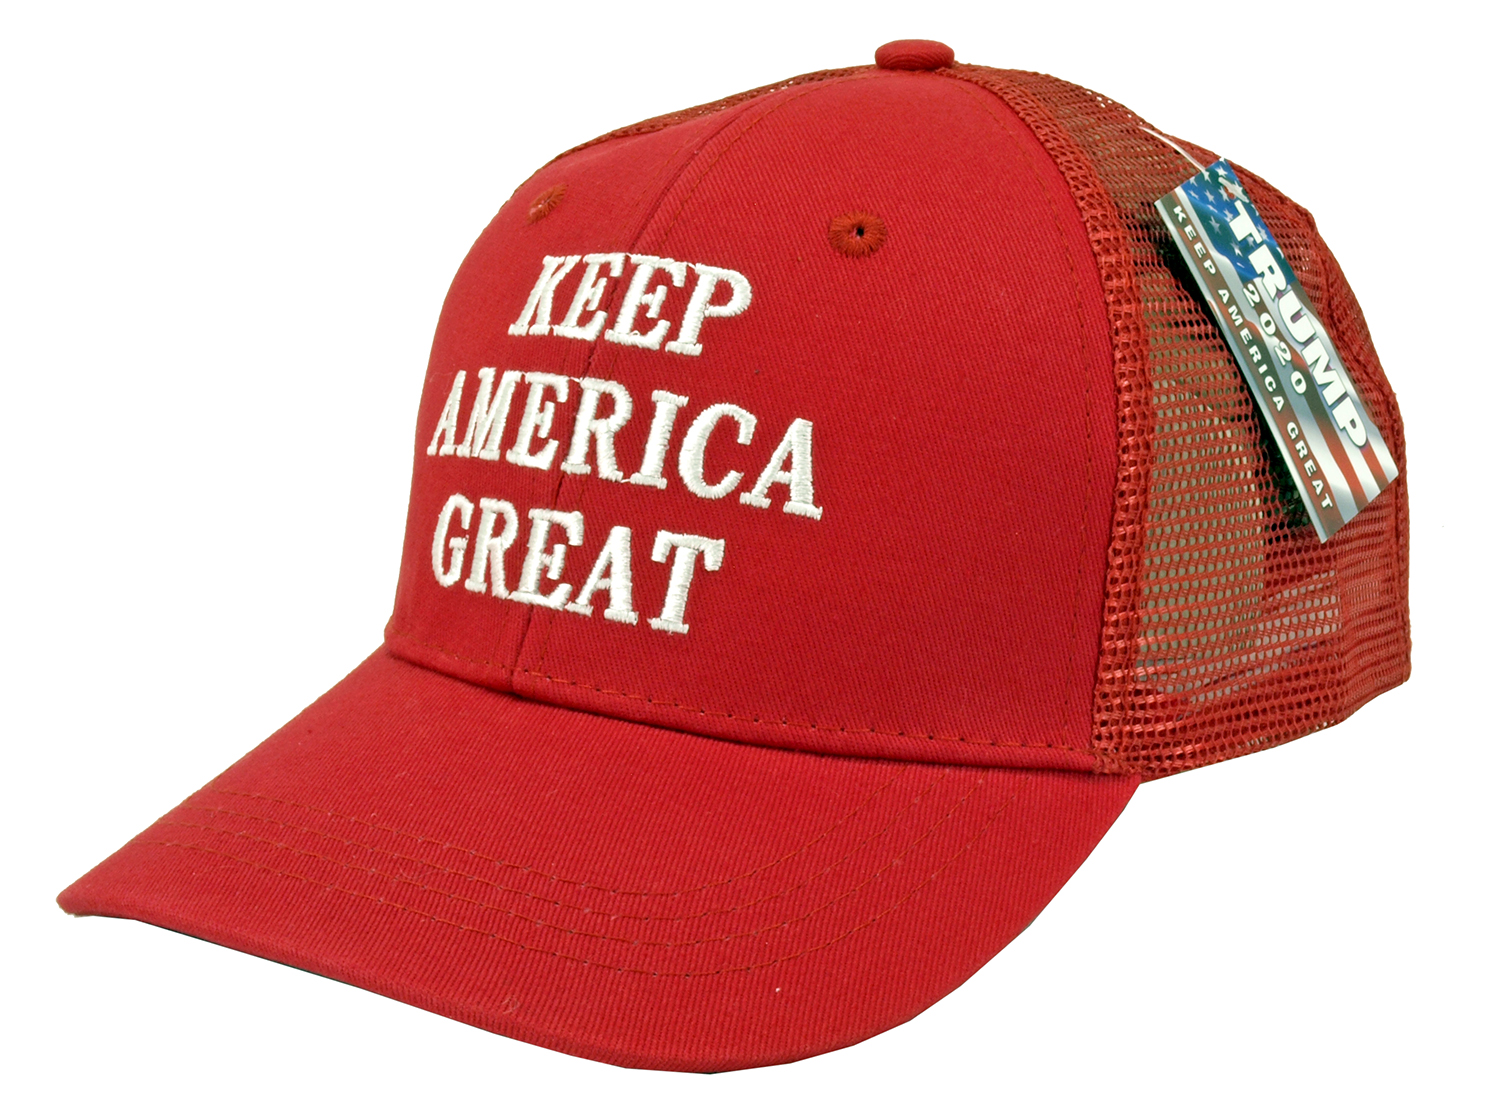 12 - pc. Trump Keep America Great Trucker Adjustable Hat - Assorted Colors